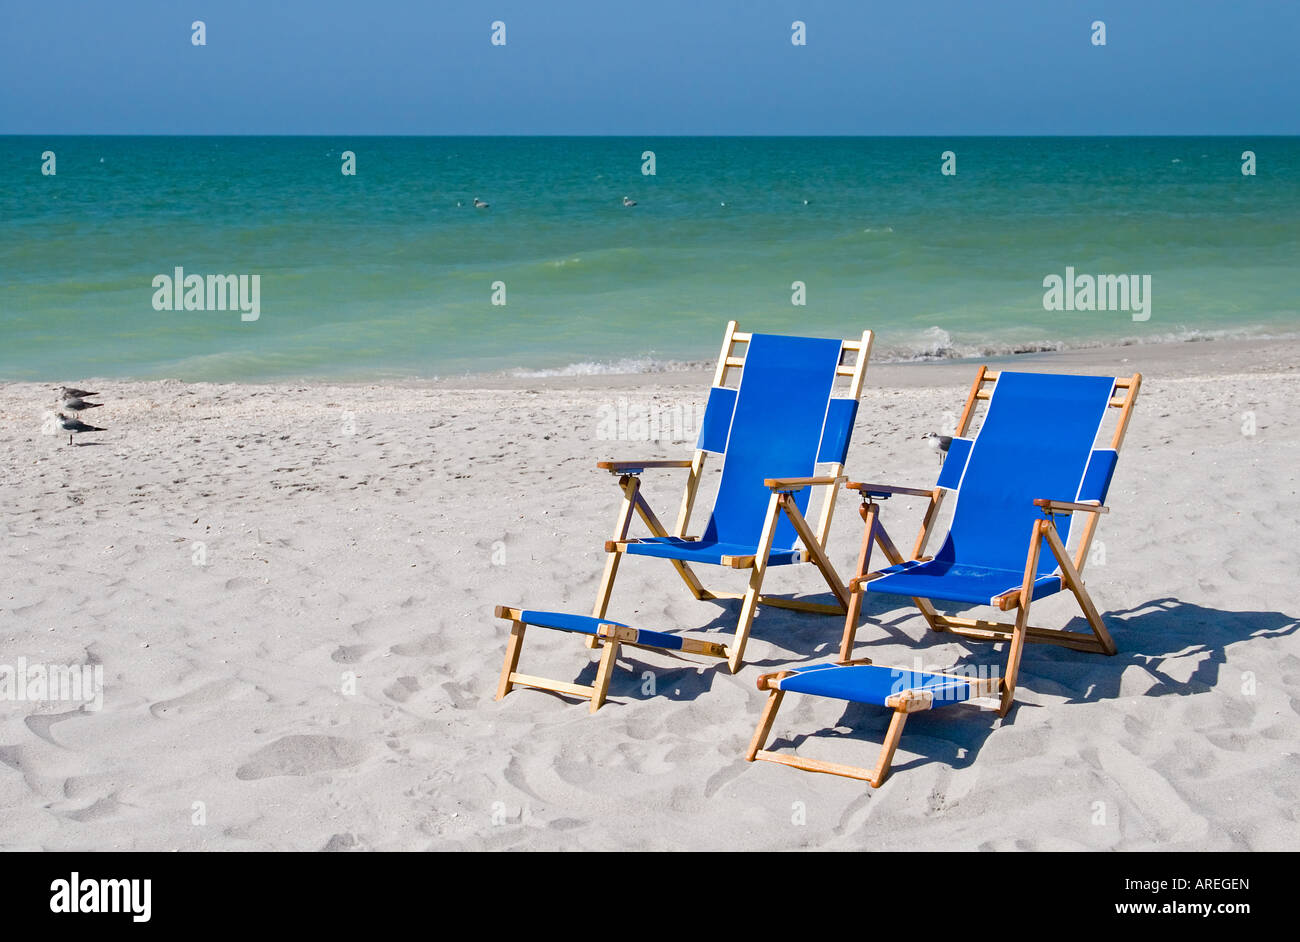 Beach and ocean scenics for vacations and summer getaways Stock Photo